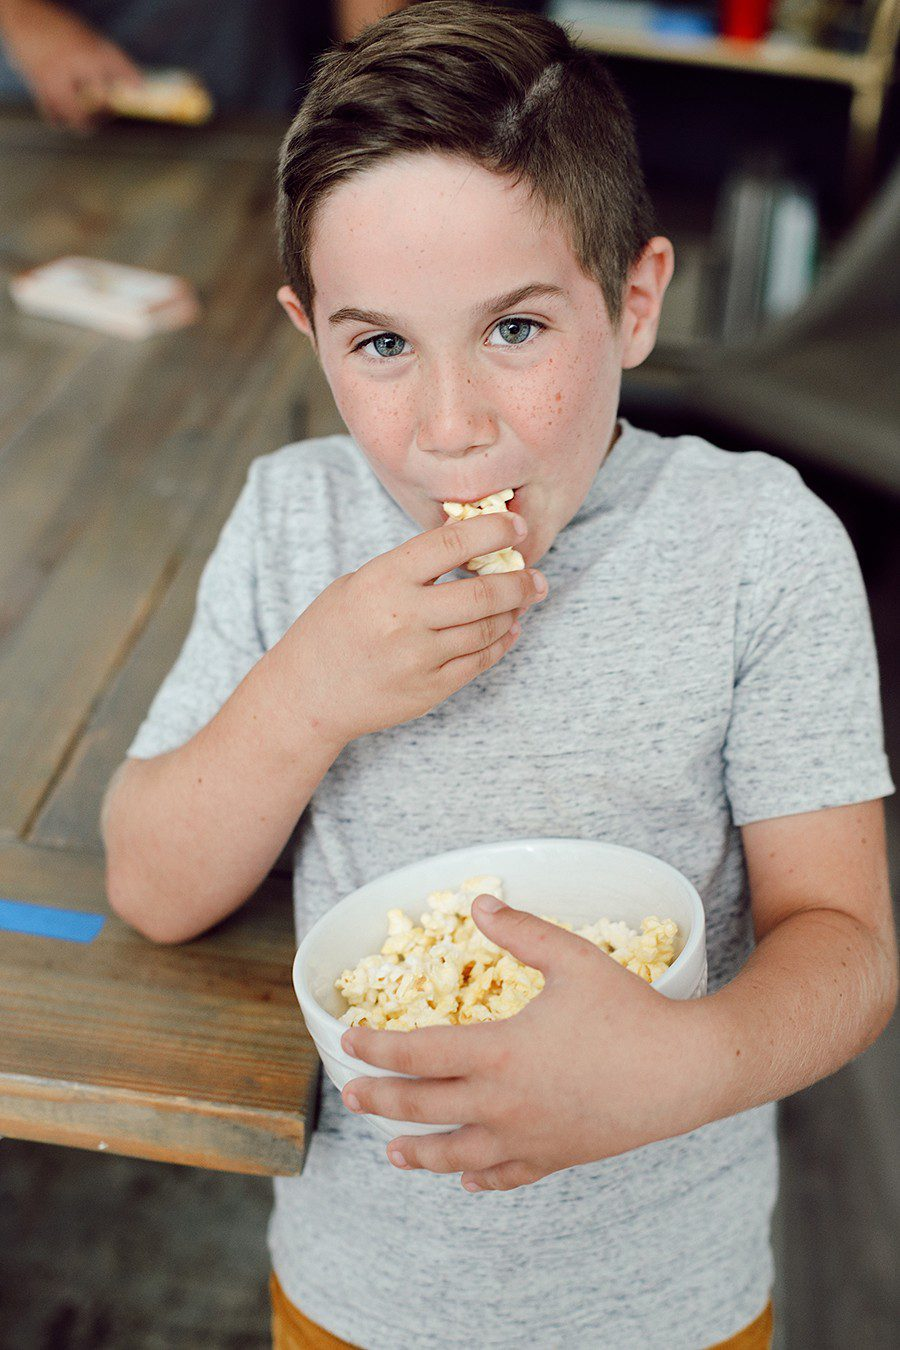 10 Popcorn Games for a Great Family Fun Night | Family Fun Night by popular Florida lifestyle blog, Fresh Mommy Blog: image of a young boy holding and eating out of a bowl of popcorn.